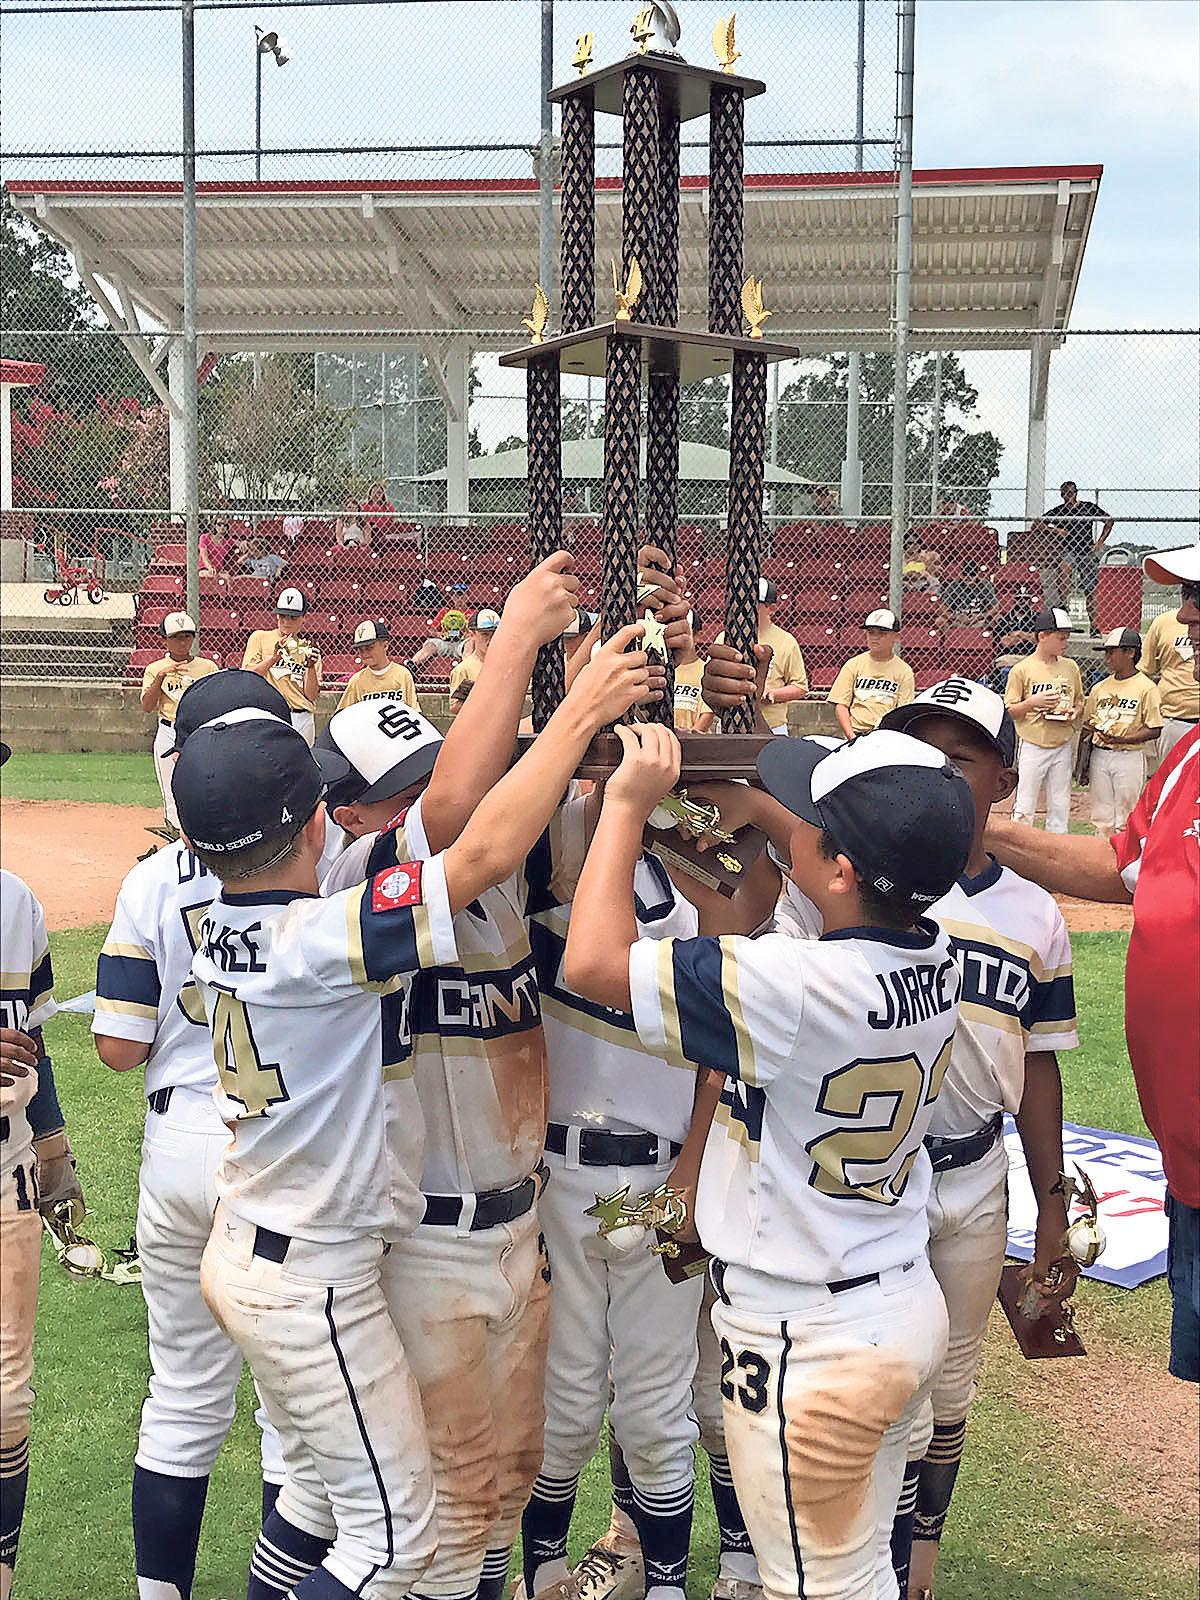 Now at 10-and-under, Canton Stingers add another Dizzy Dean